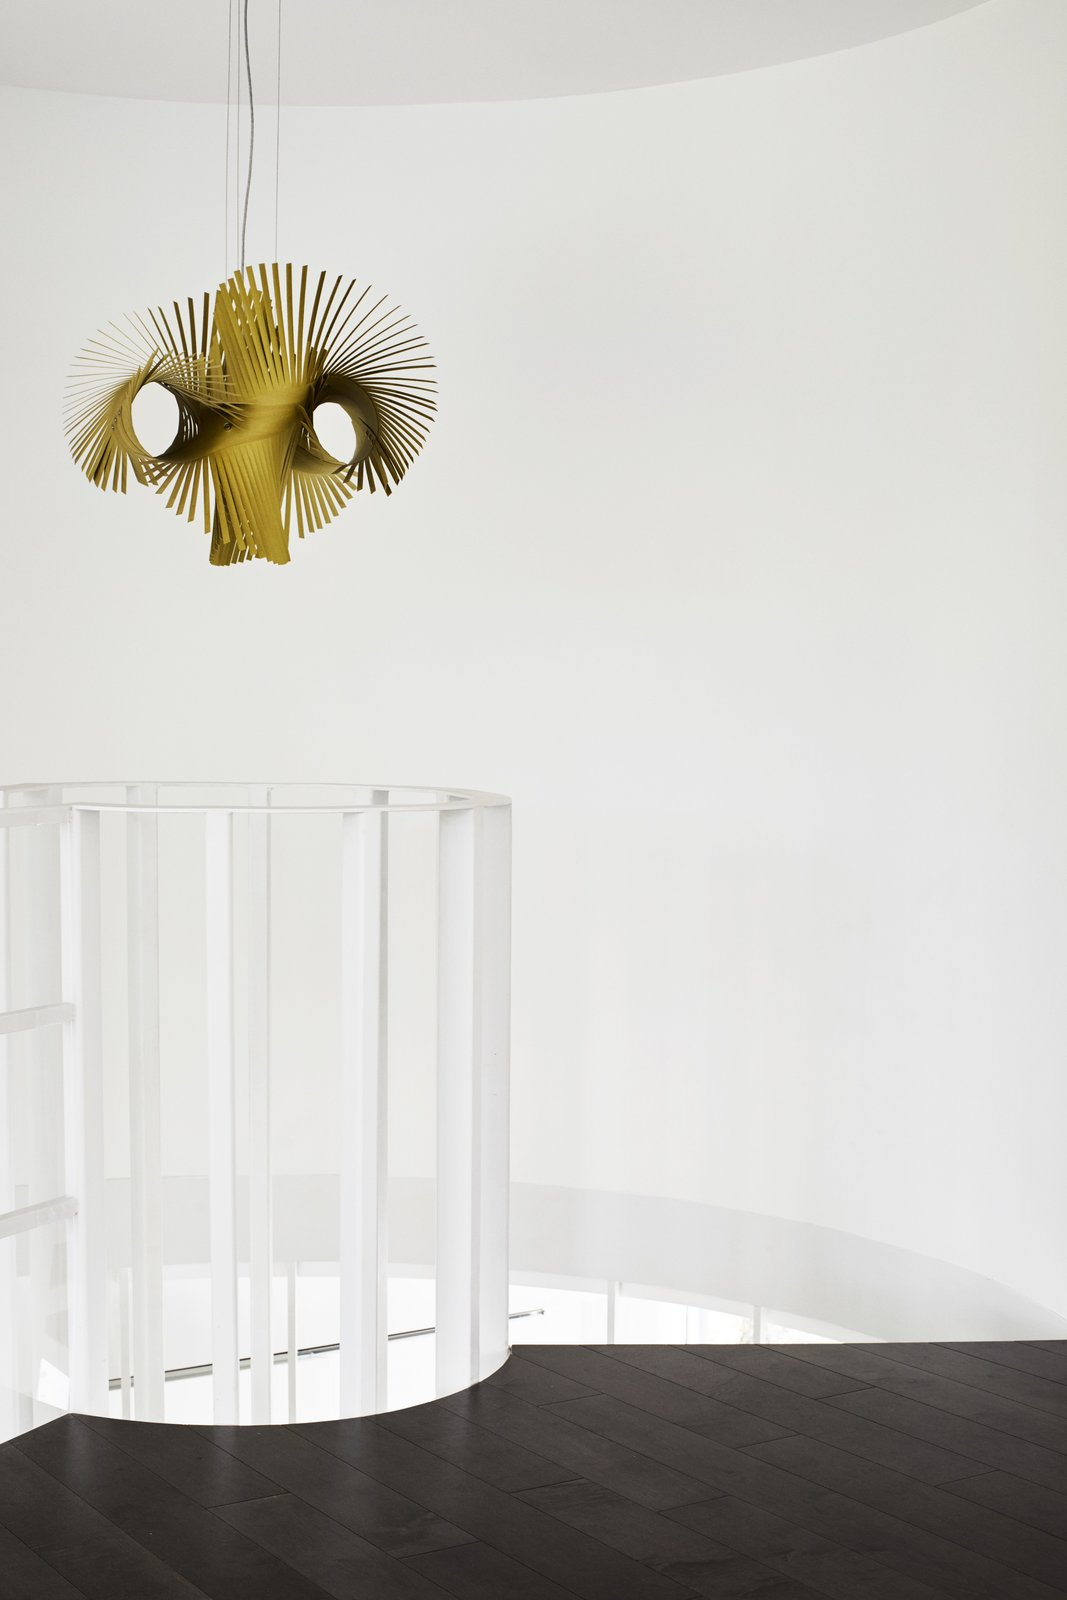 A Minimikado light from Lzf Lamps hangs at the top of the staircase.